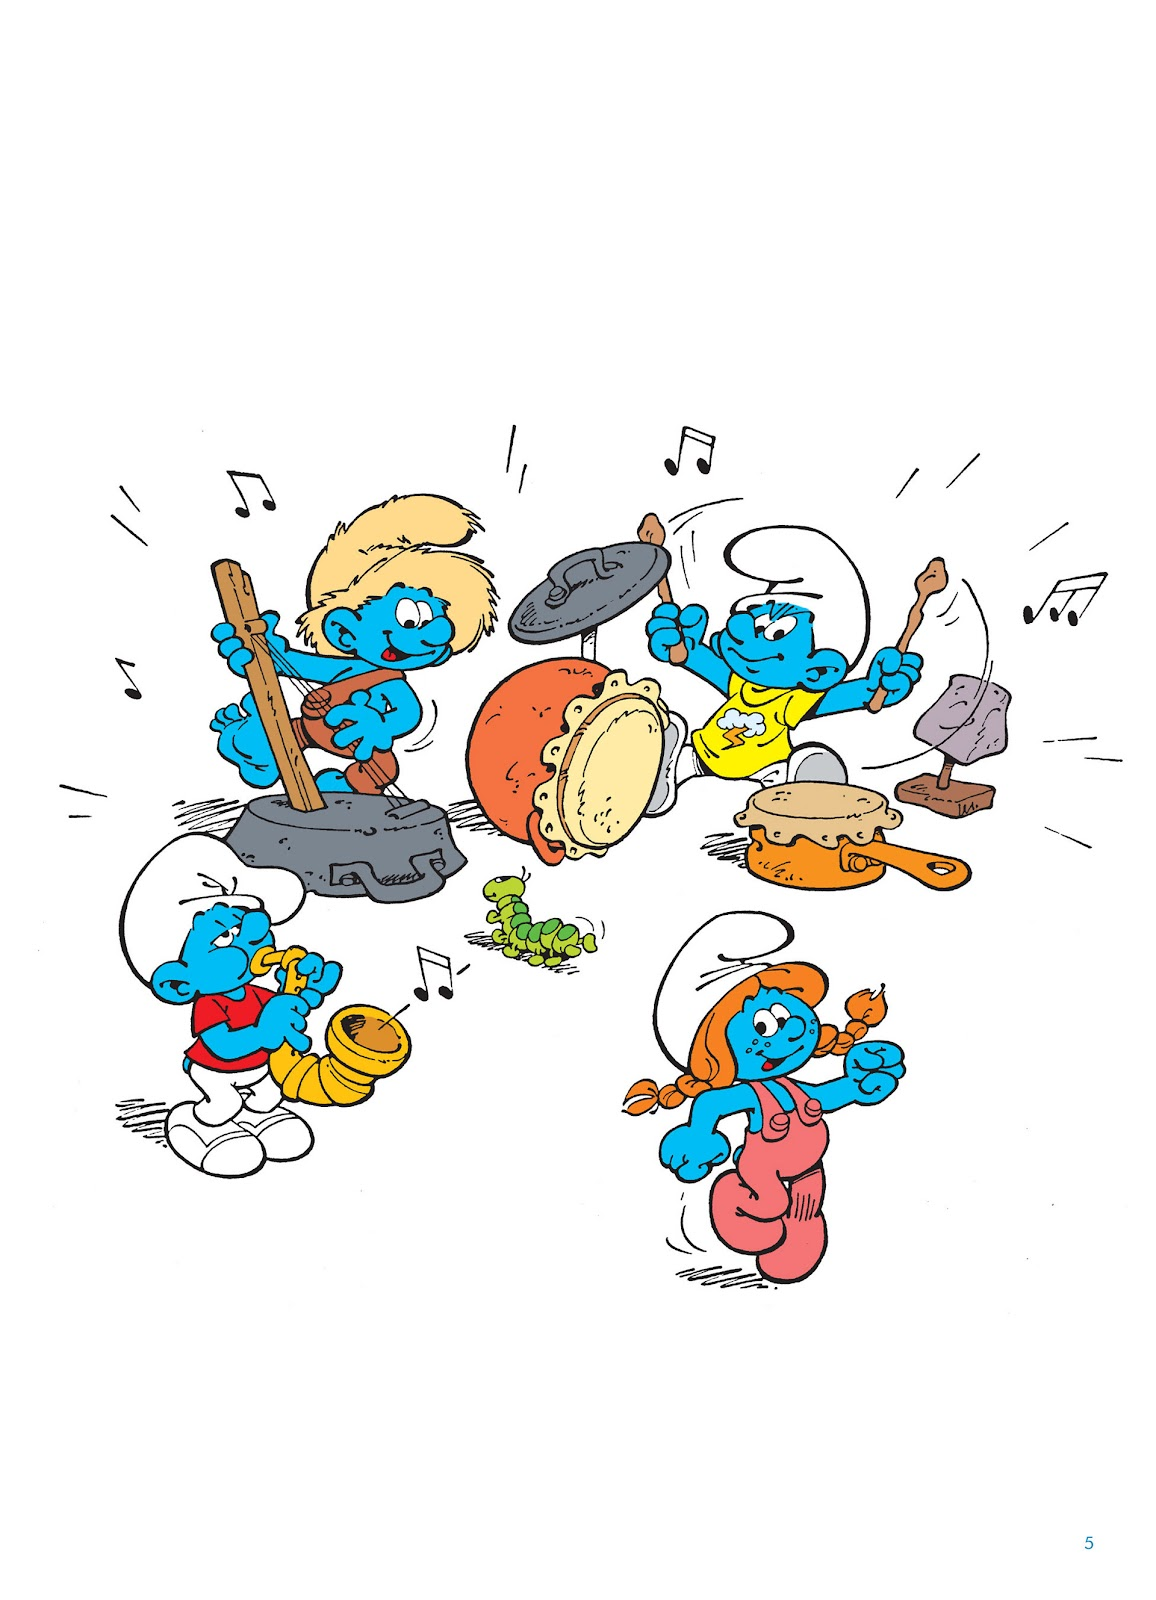 Read online The Smurfs comic -  Issue #15 - 6